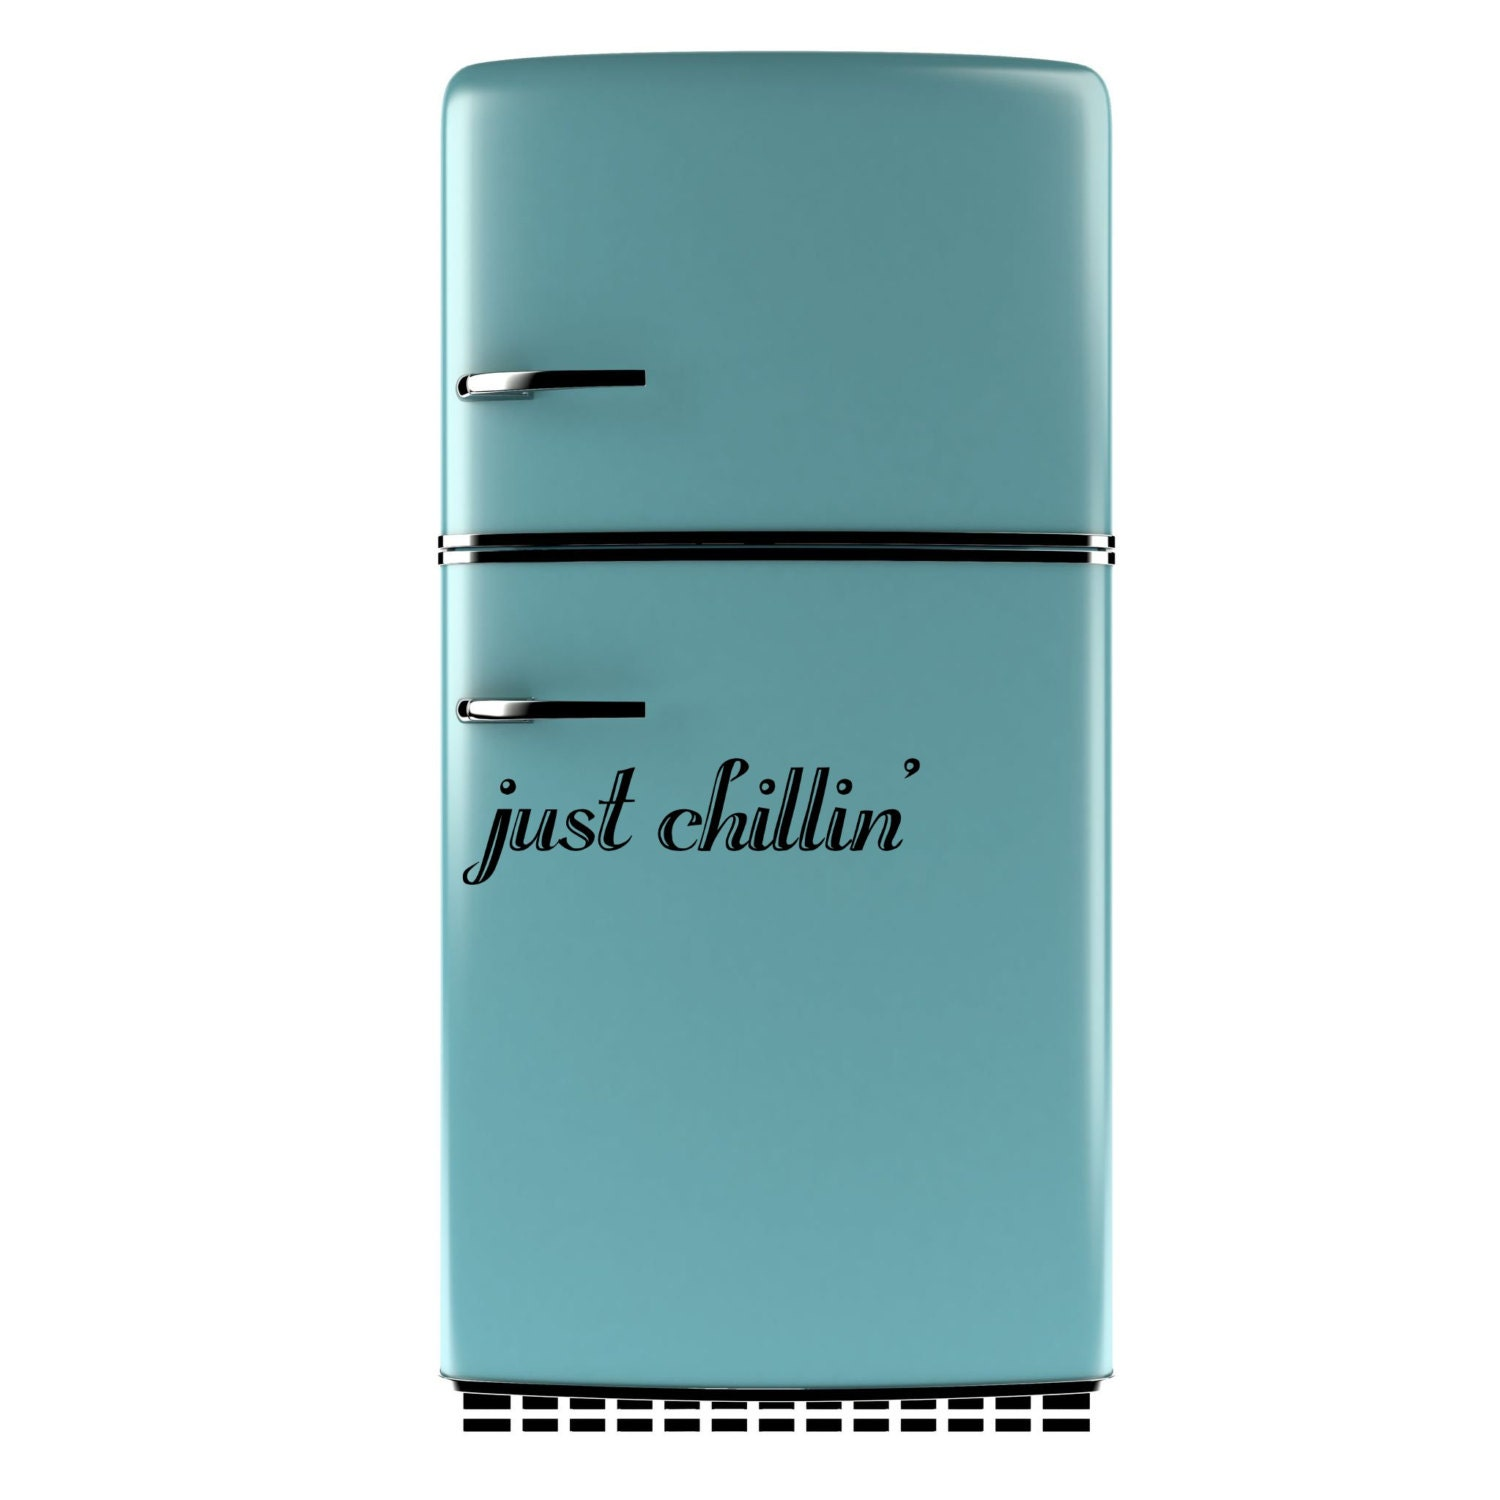 Just Chilllin Vinyl Decal For Refrigerator By